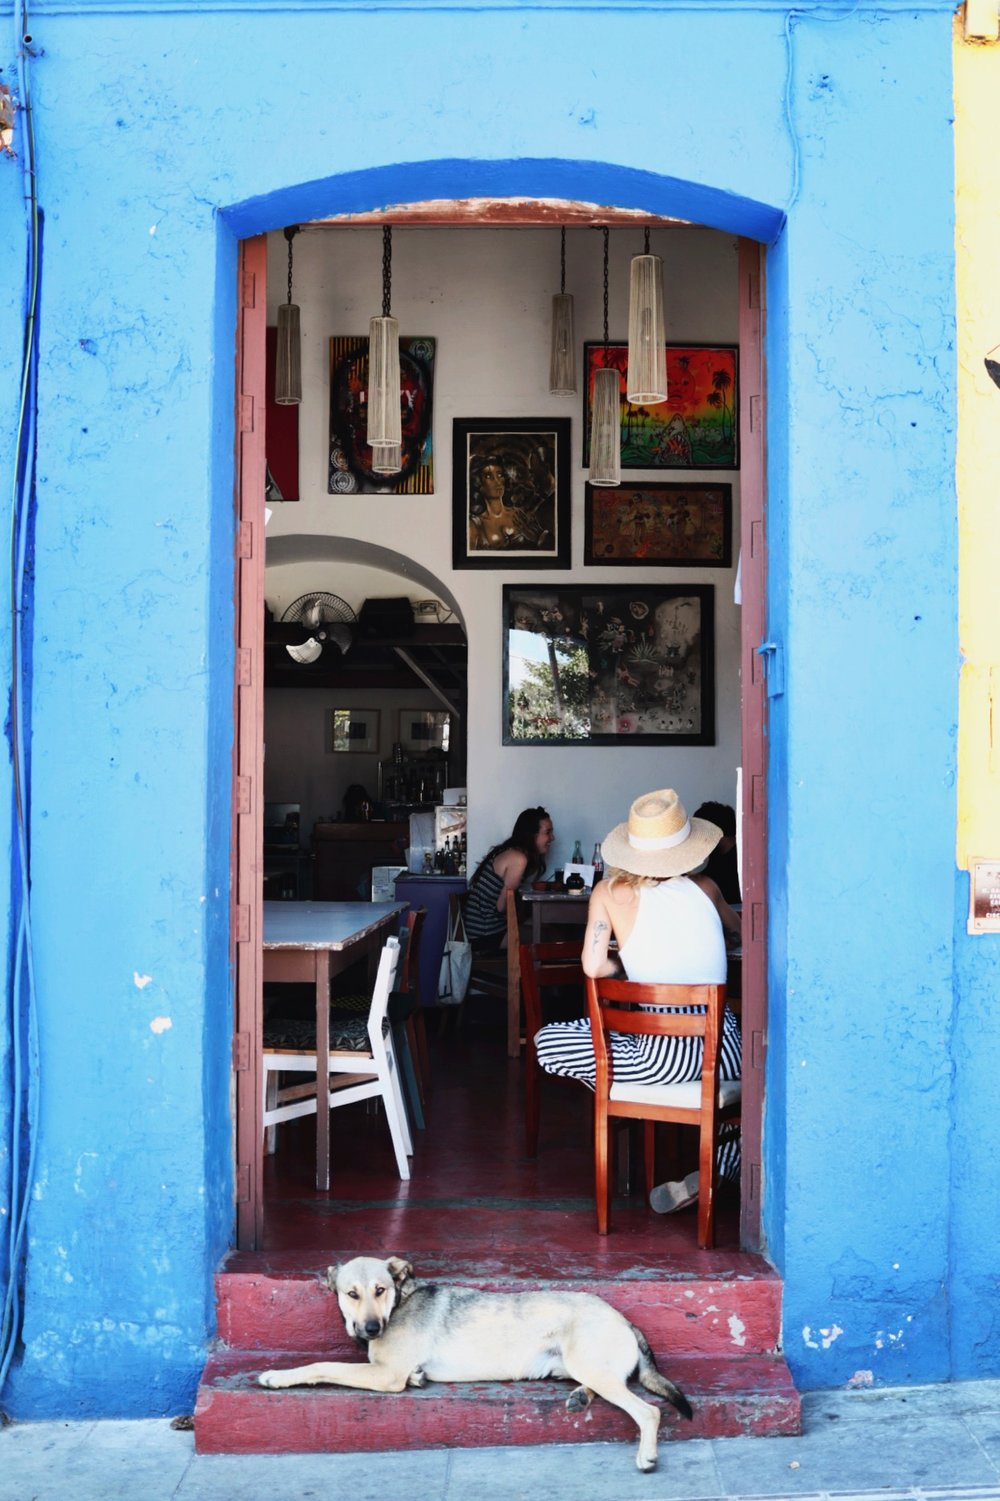 Oaxaca City travel guide - Rachel Lunghi of Laces & Likes